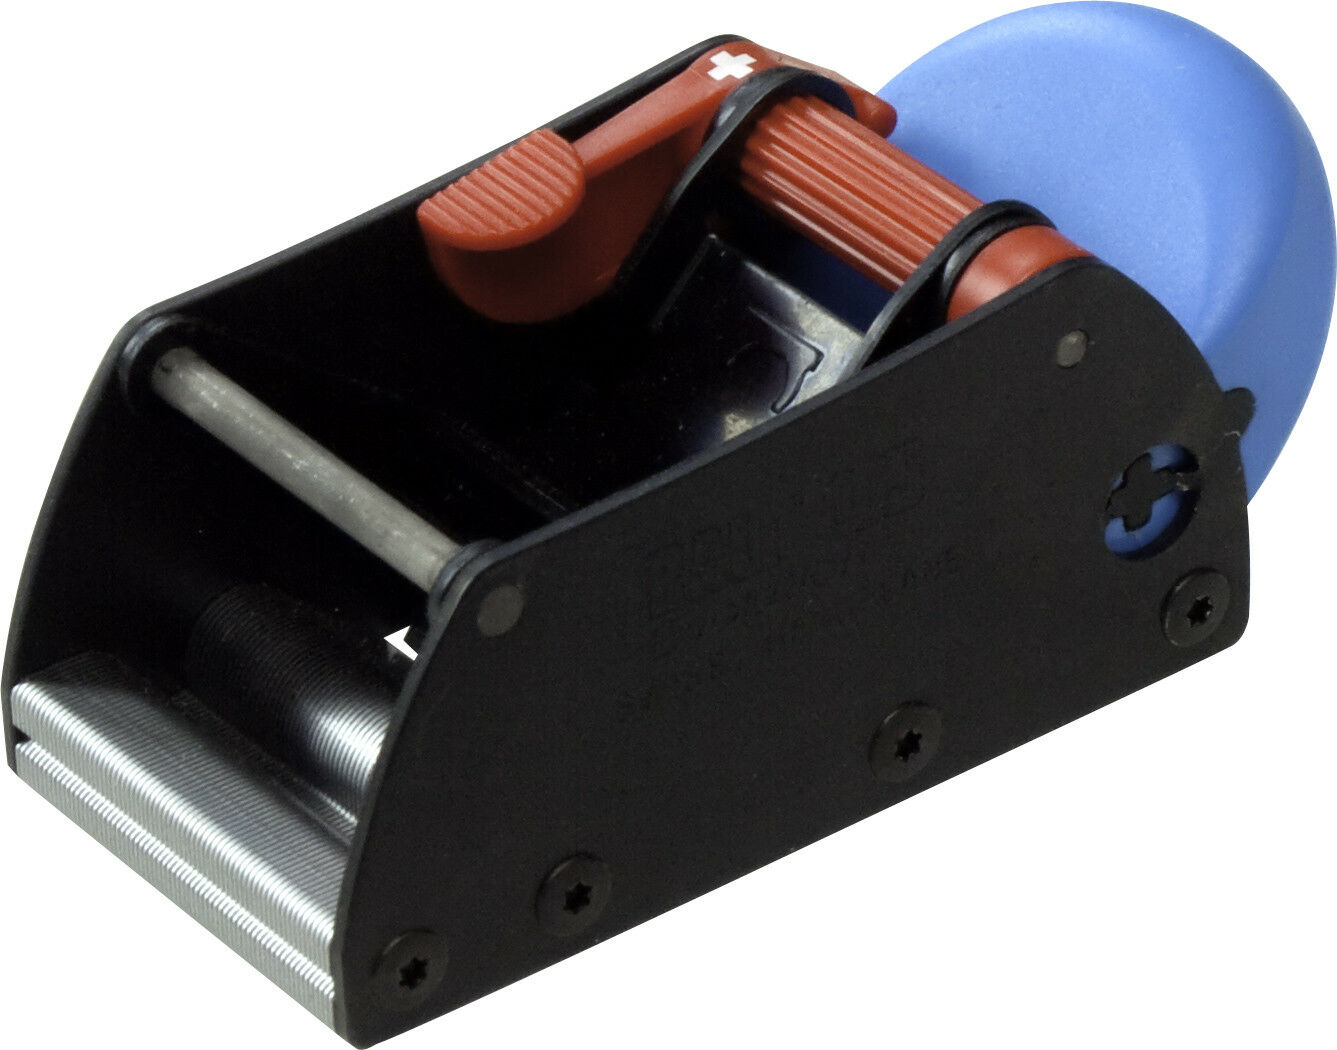 RALI 105 EVOLUTION -  Compact Swiss Hand Plane with Laminated Steel Sole - NEW